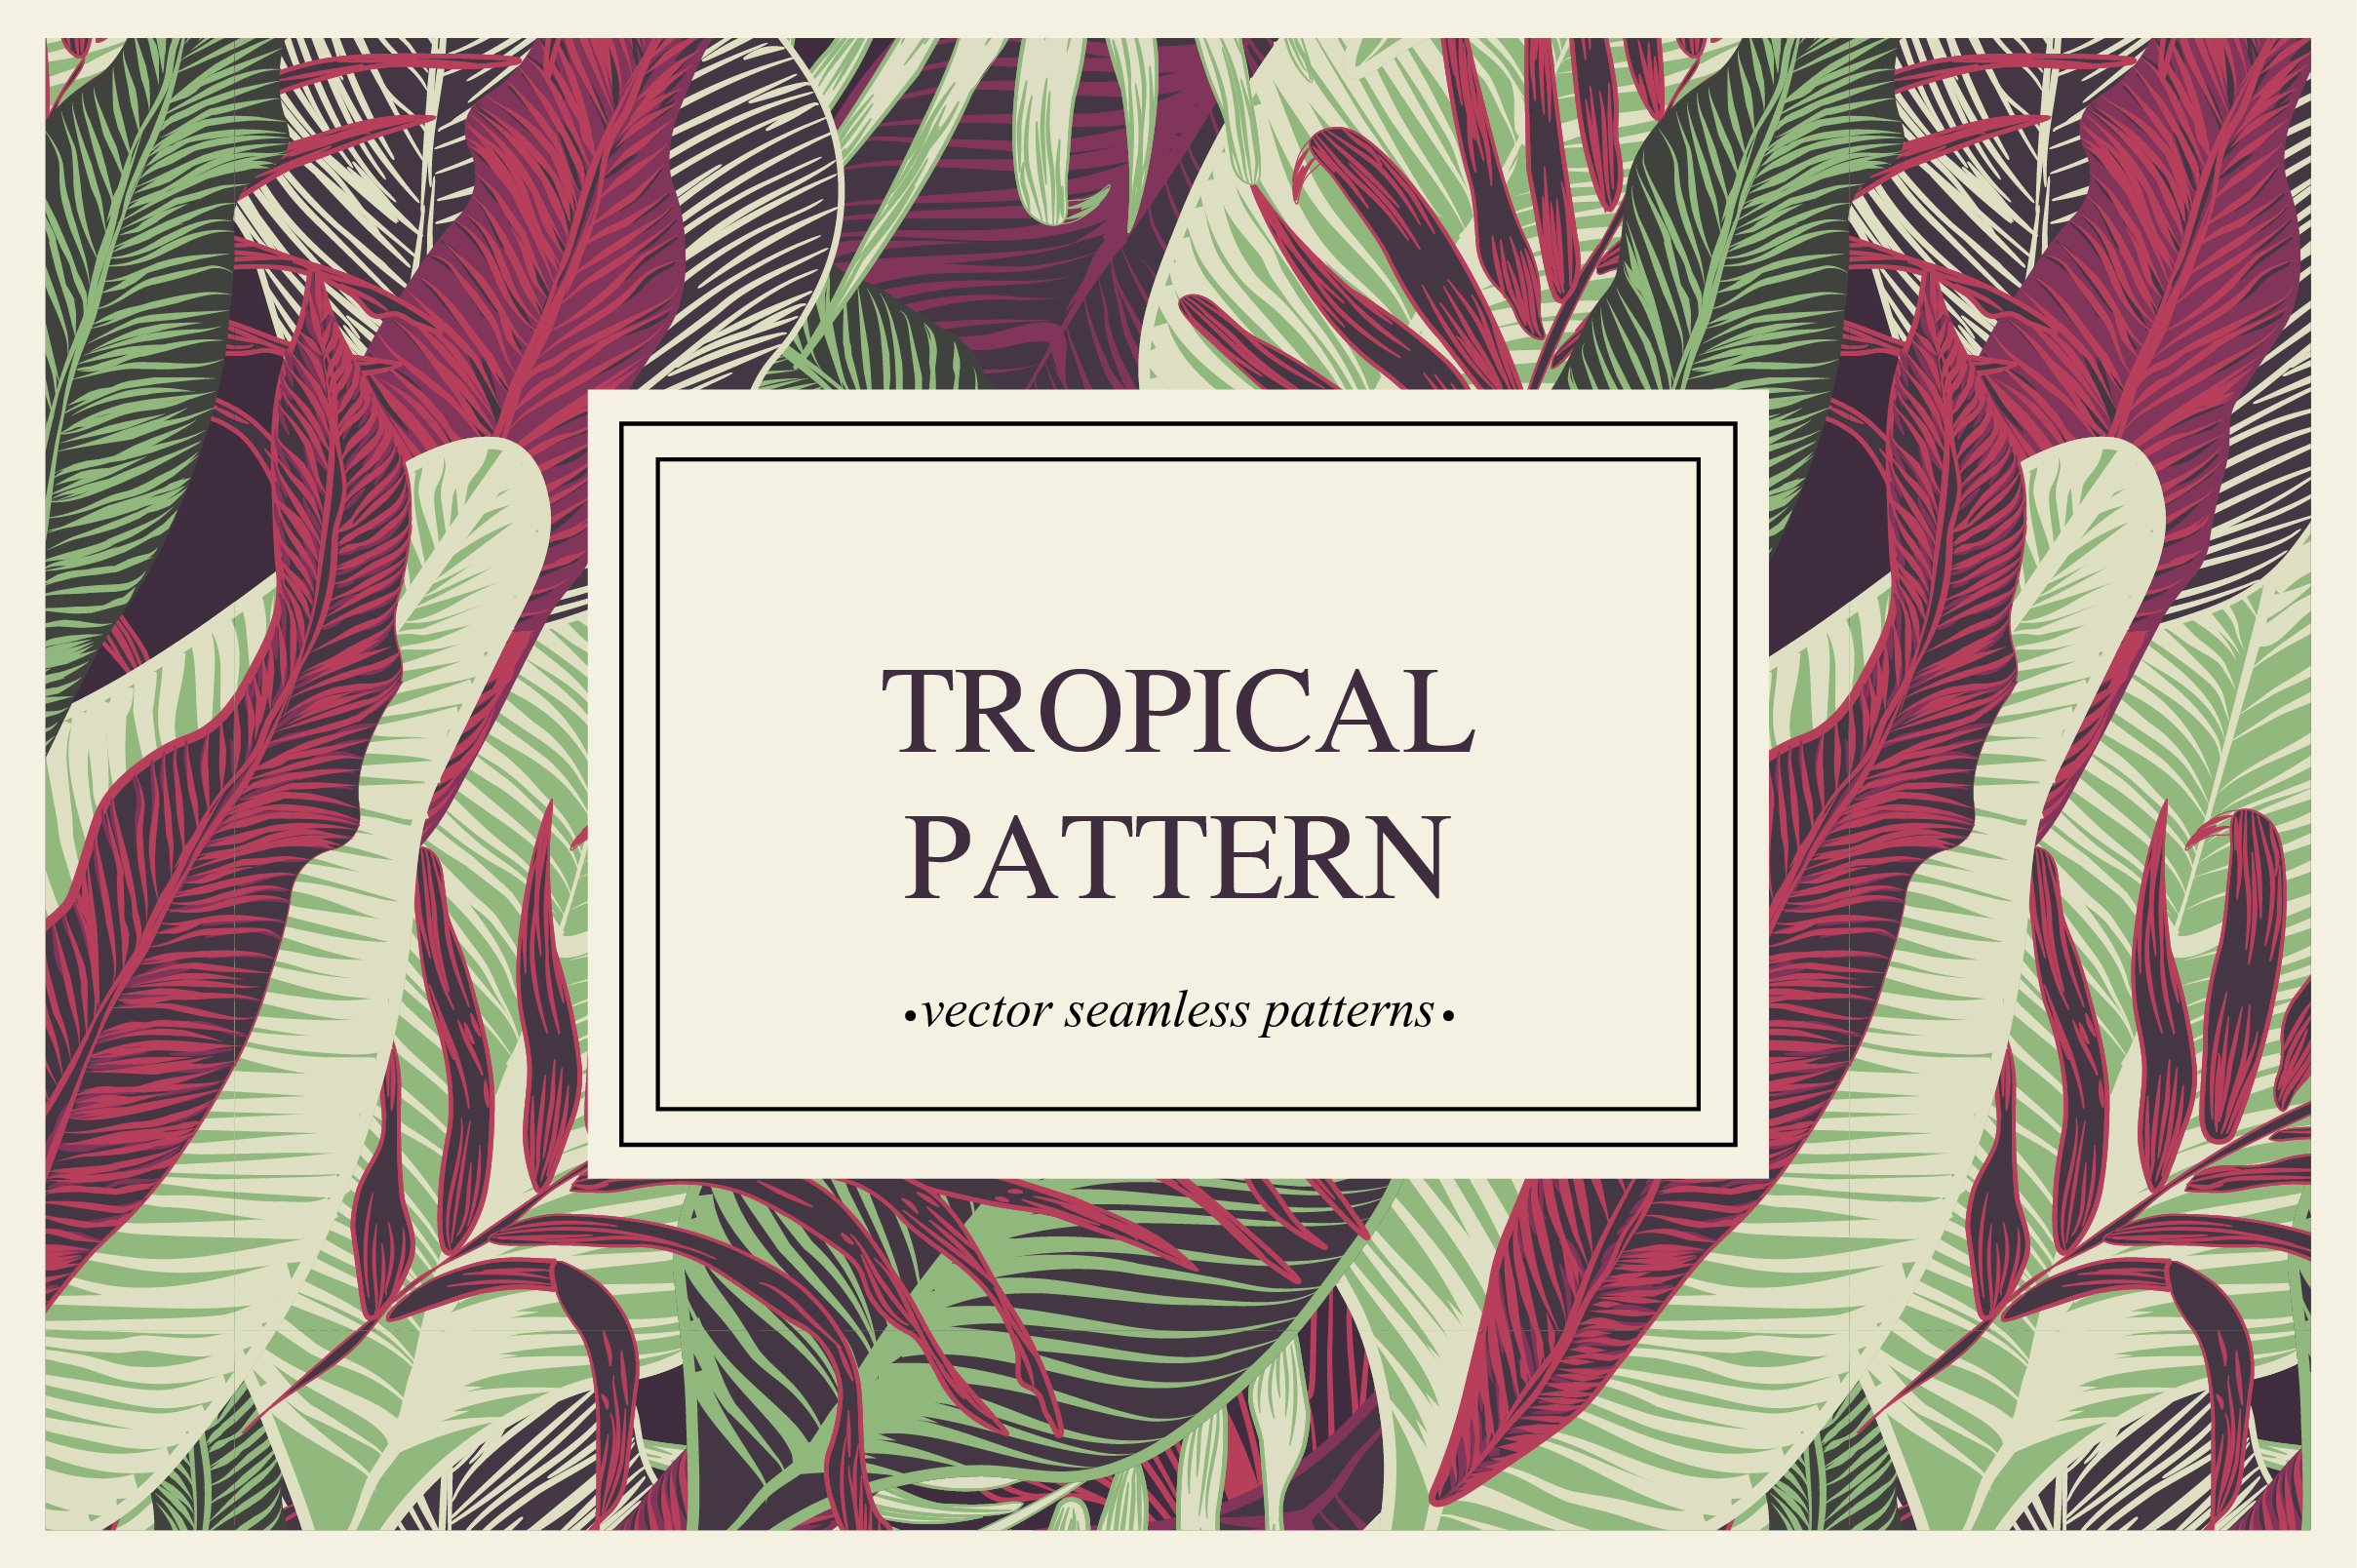 Tropical pattern example image 2